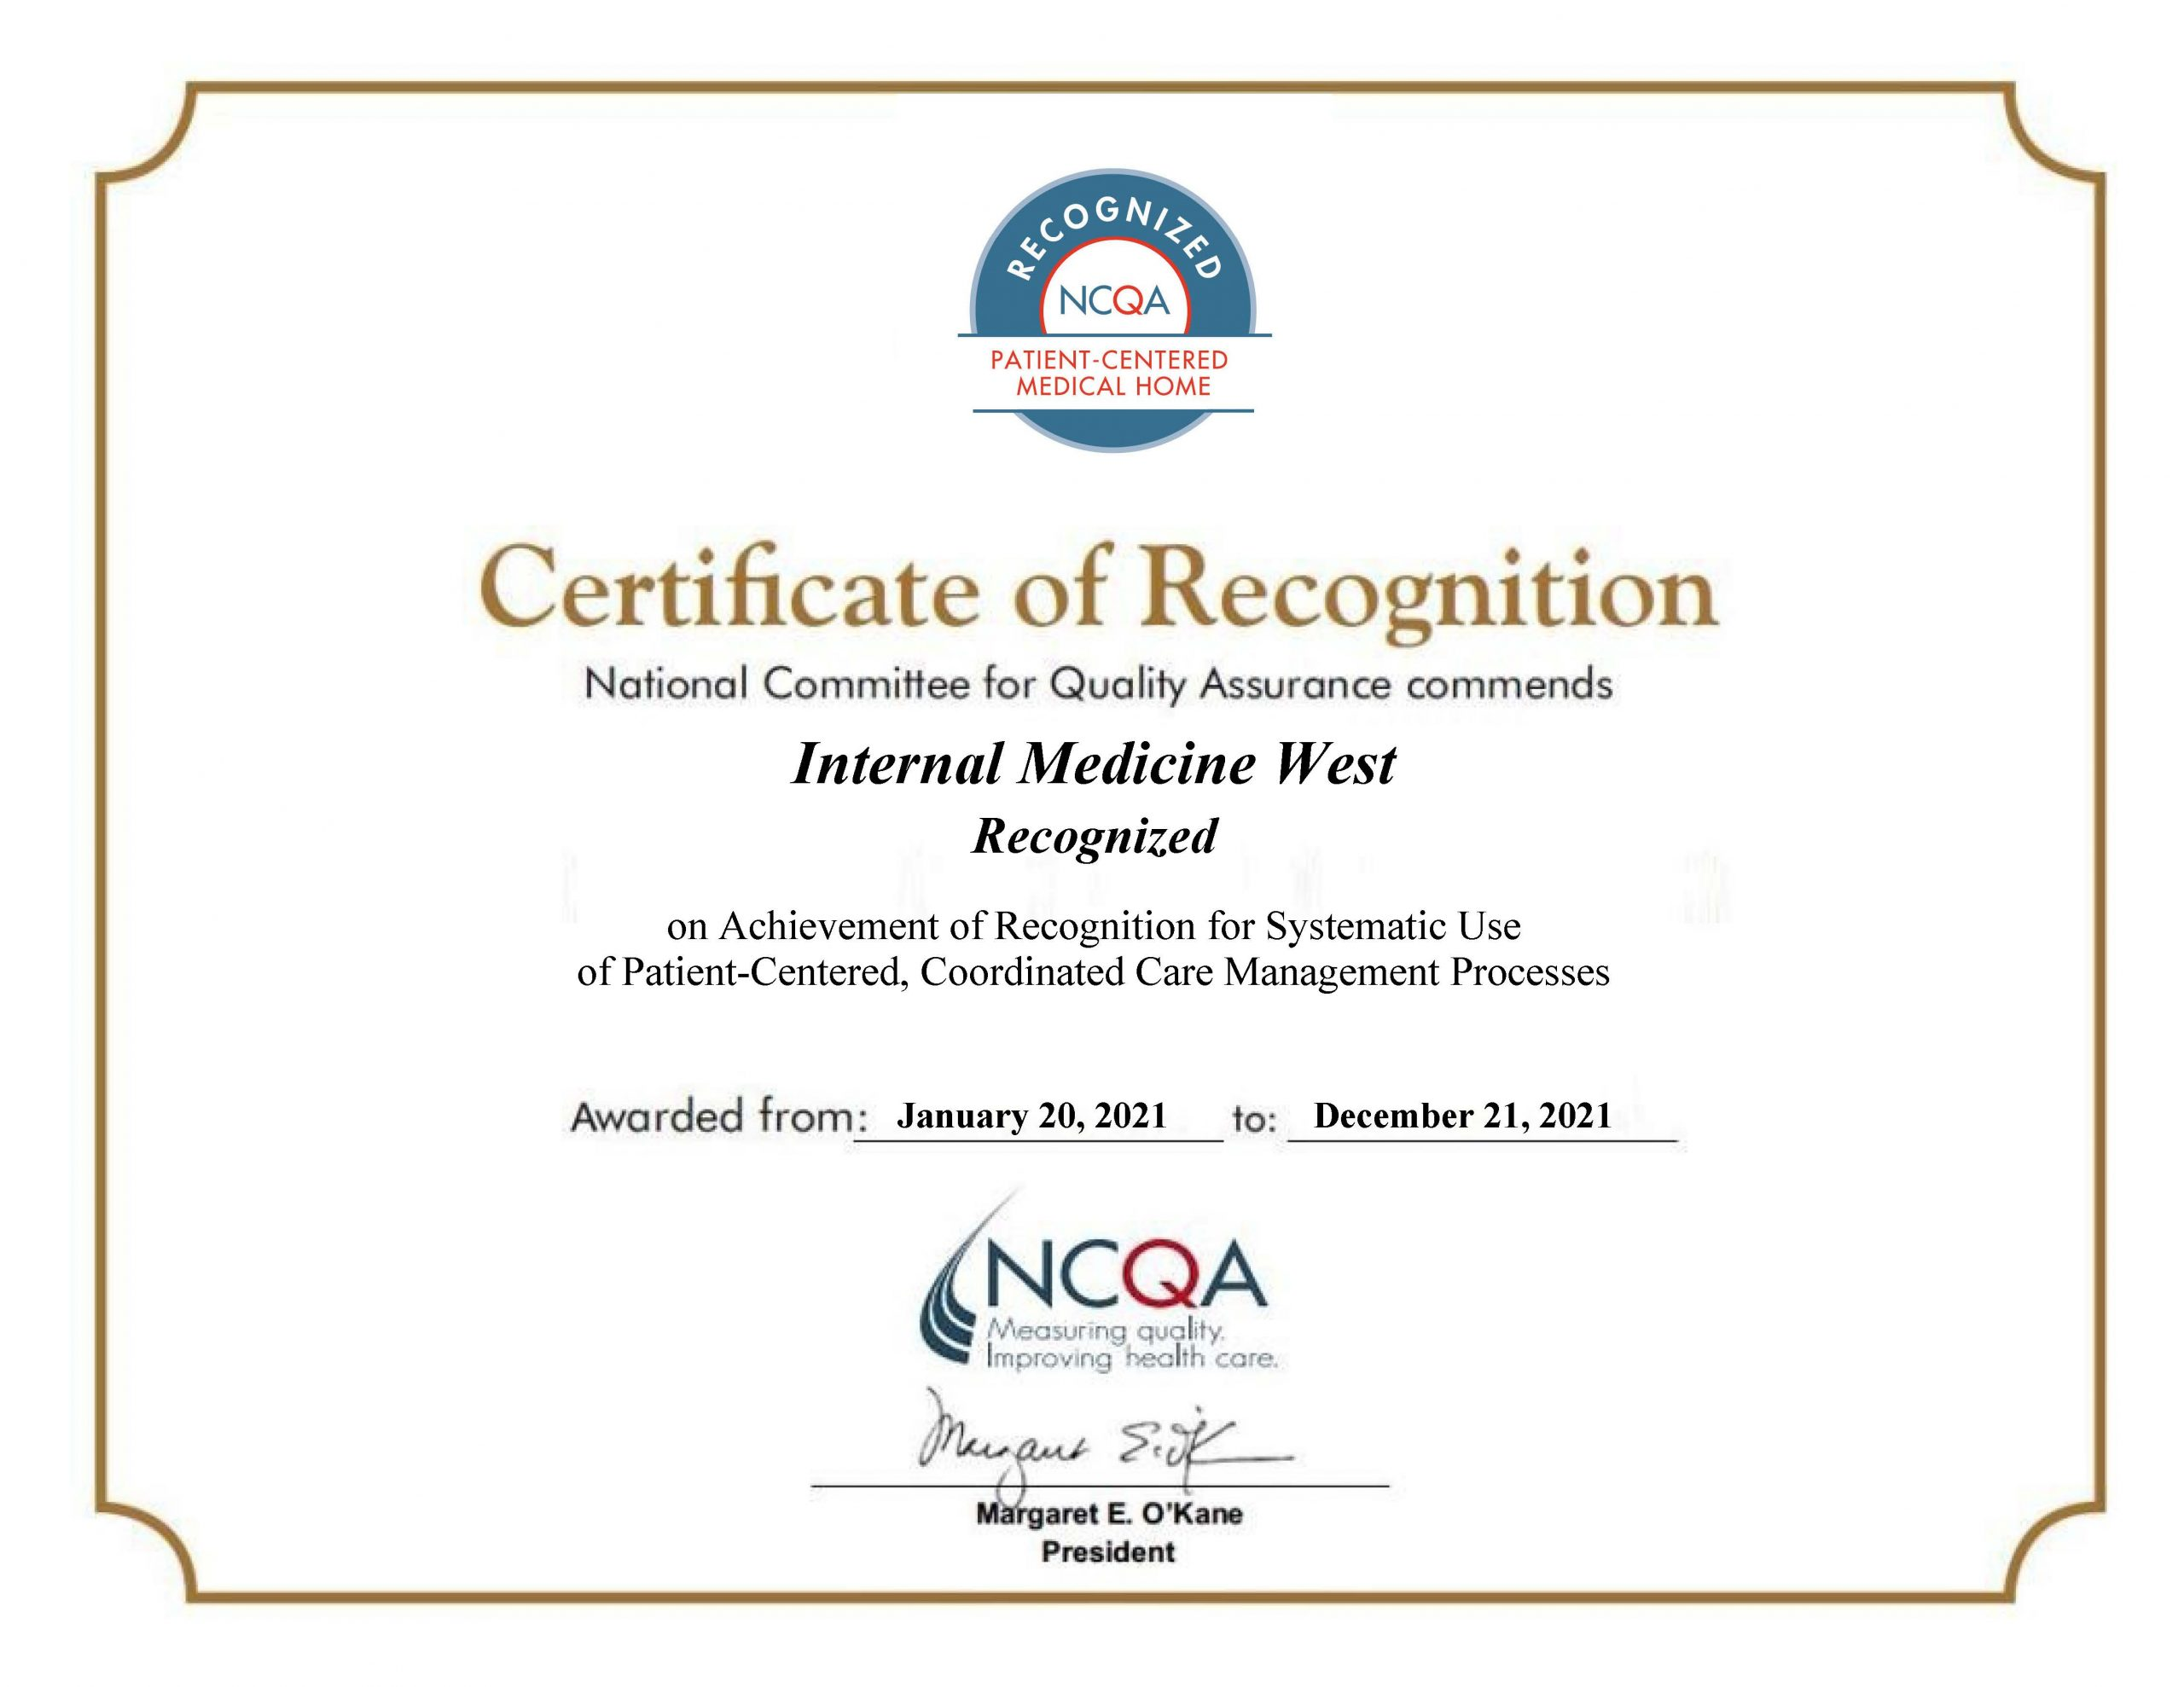 Internal Medicine West Recognized as PCMH